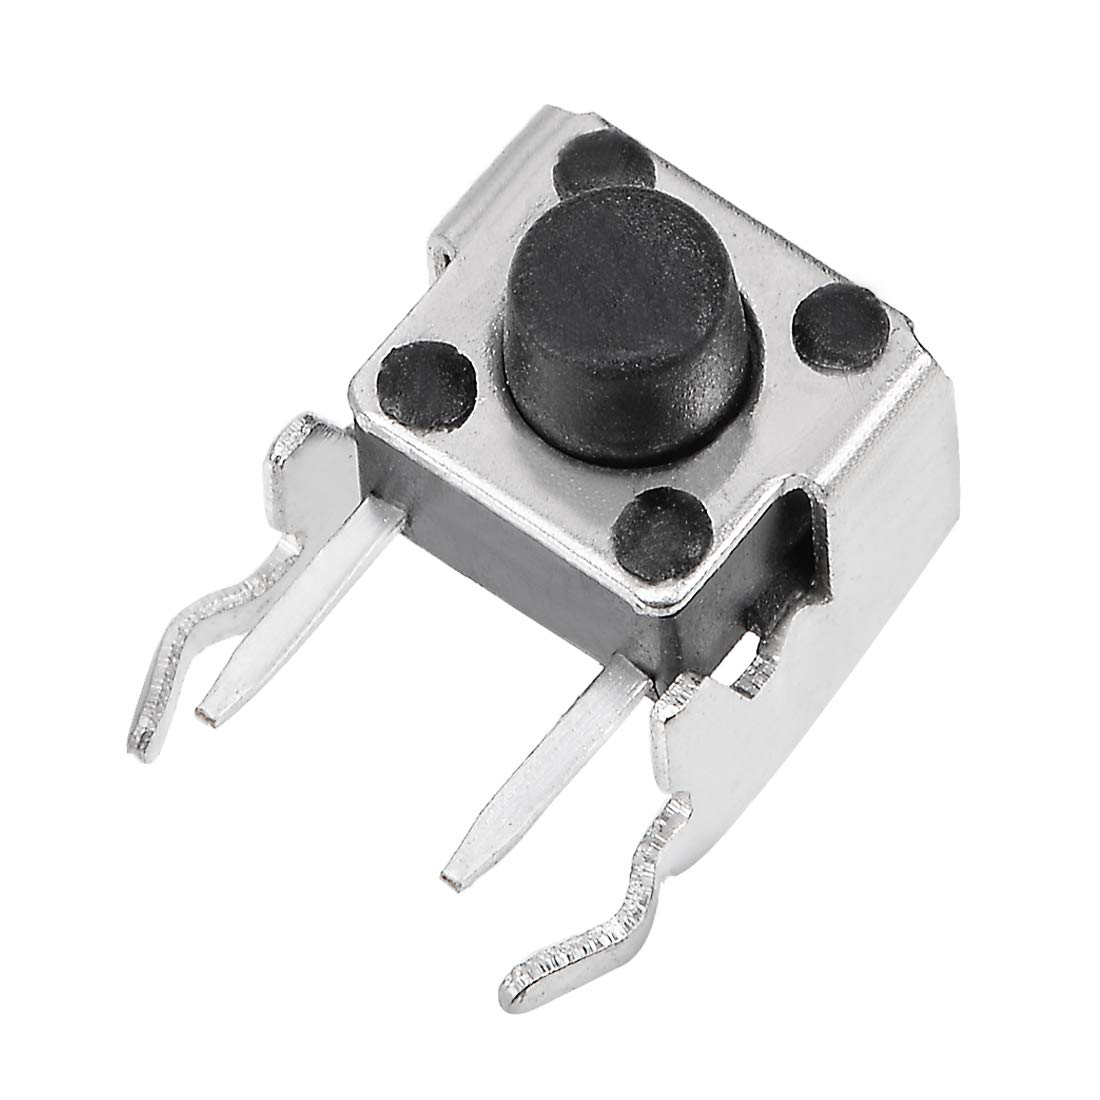 uxcell/® 10Pcs Momentary PCB Side Mounting Regular Bracket Pushbutton Push Button Tact Tactile Switch DIP 2 Terminals